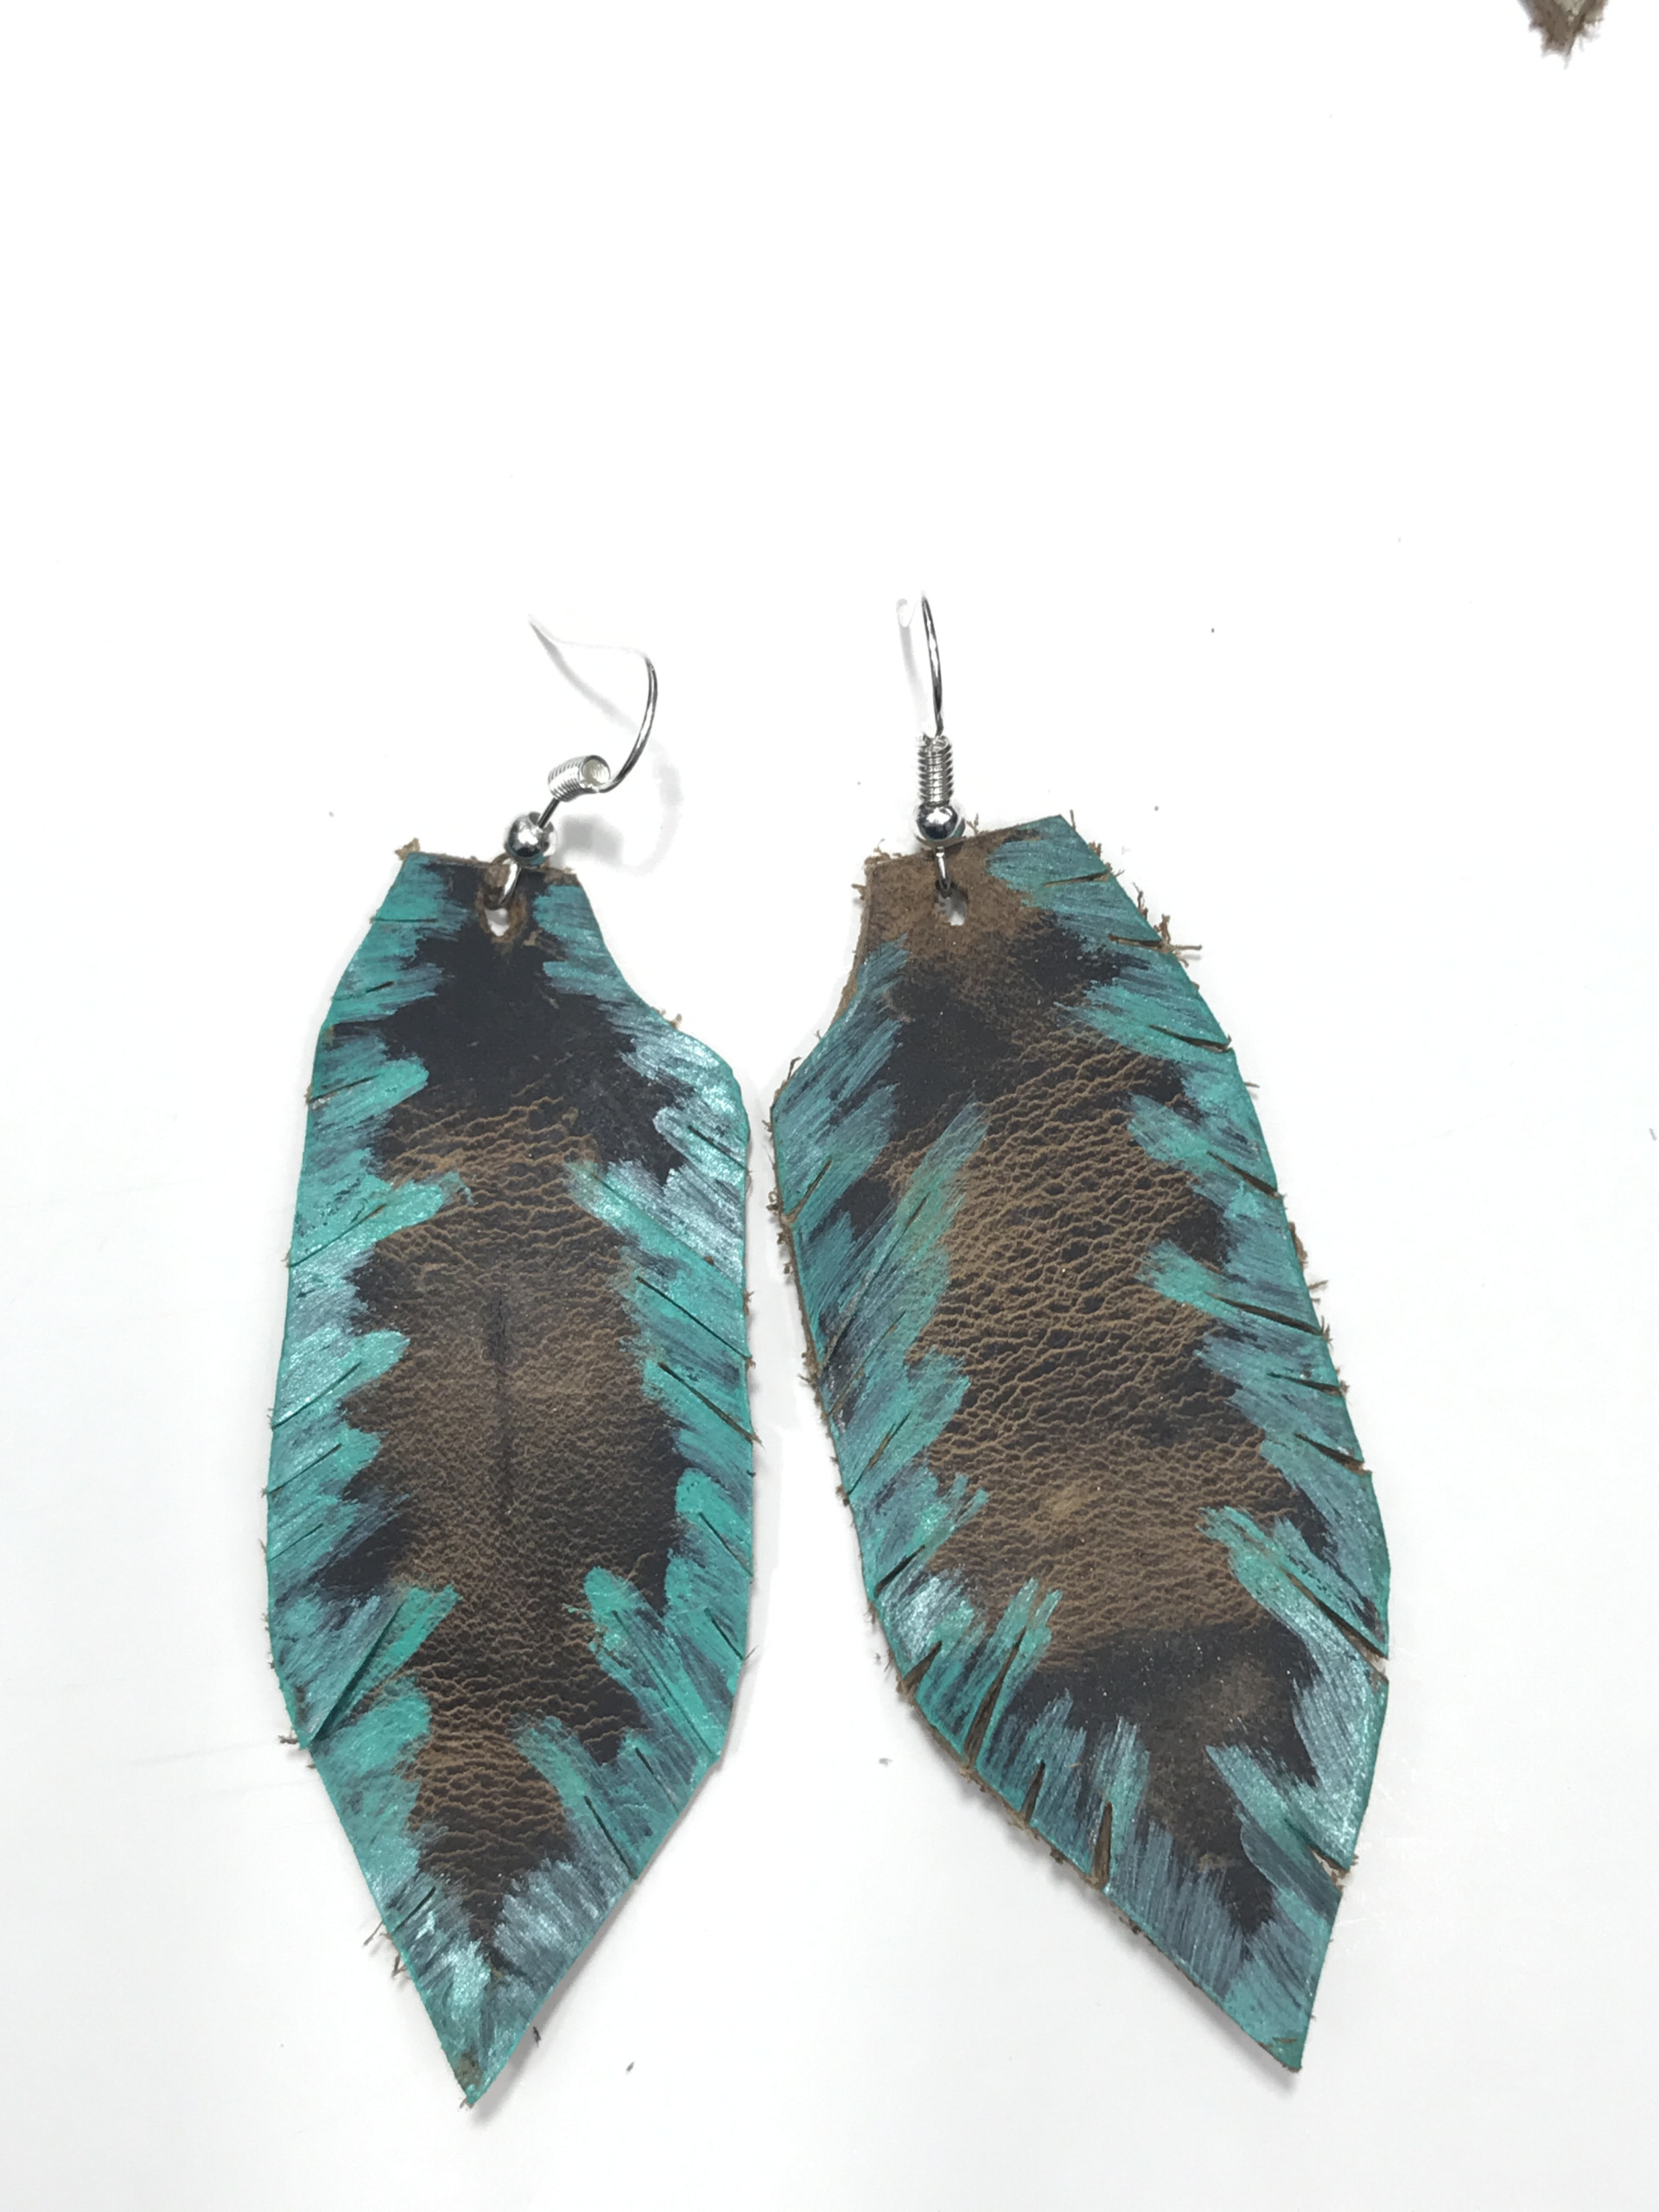 e painted aluminum products hand rose cut feather brass earrings gold img leather chains original